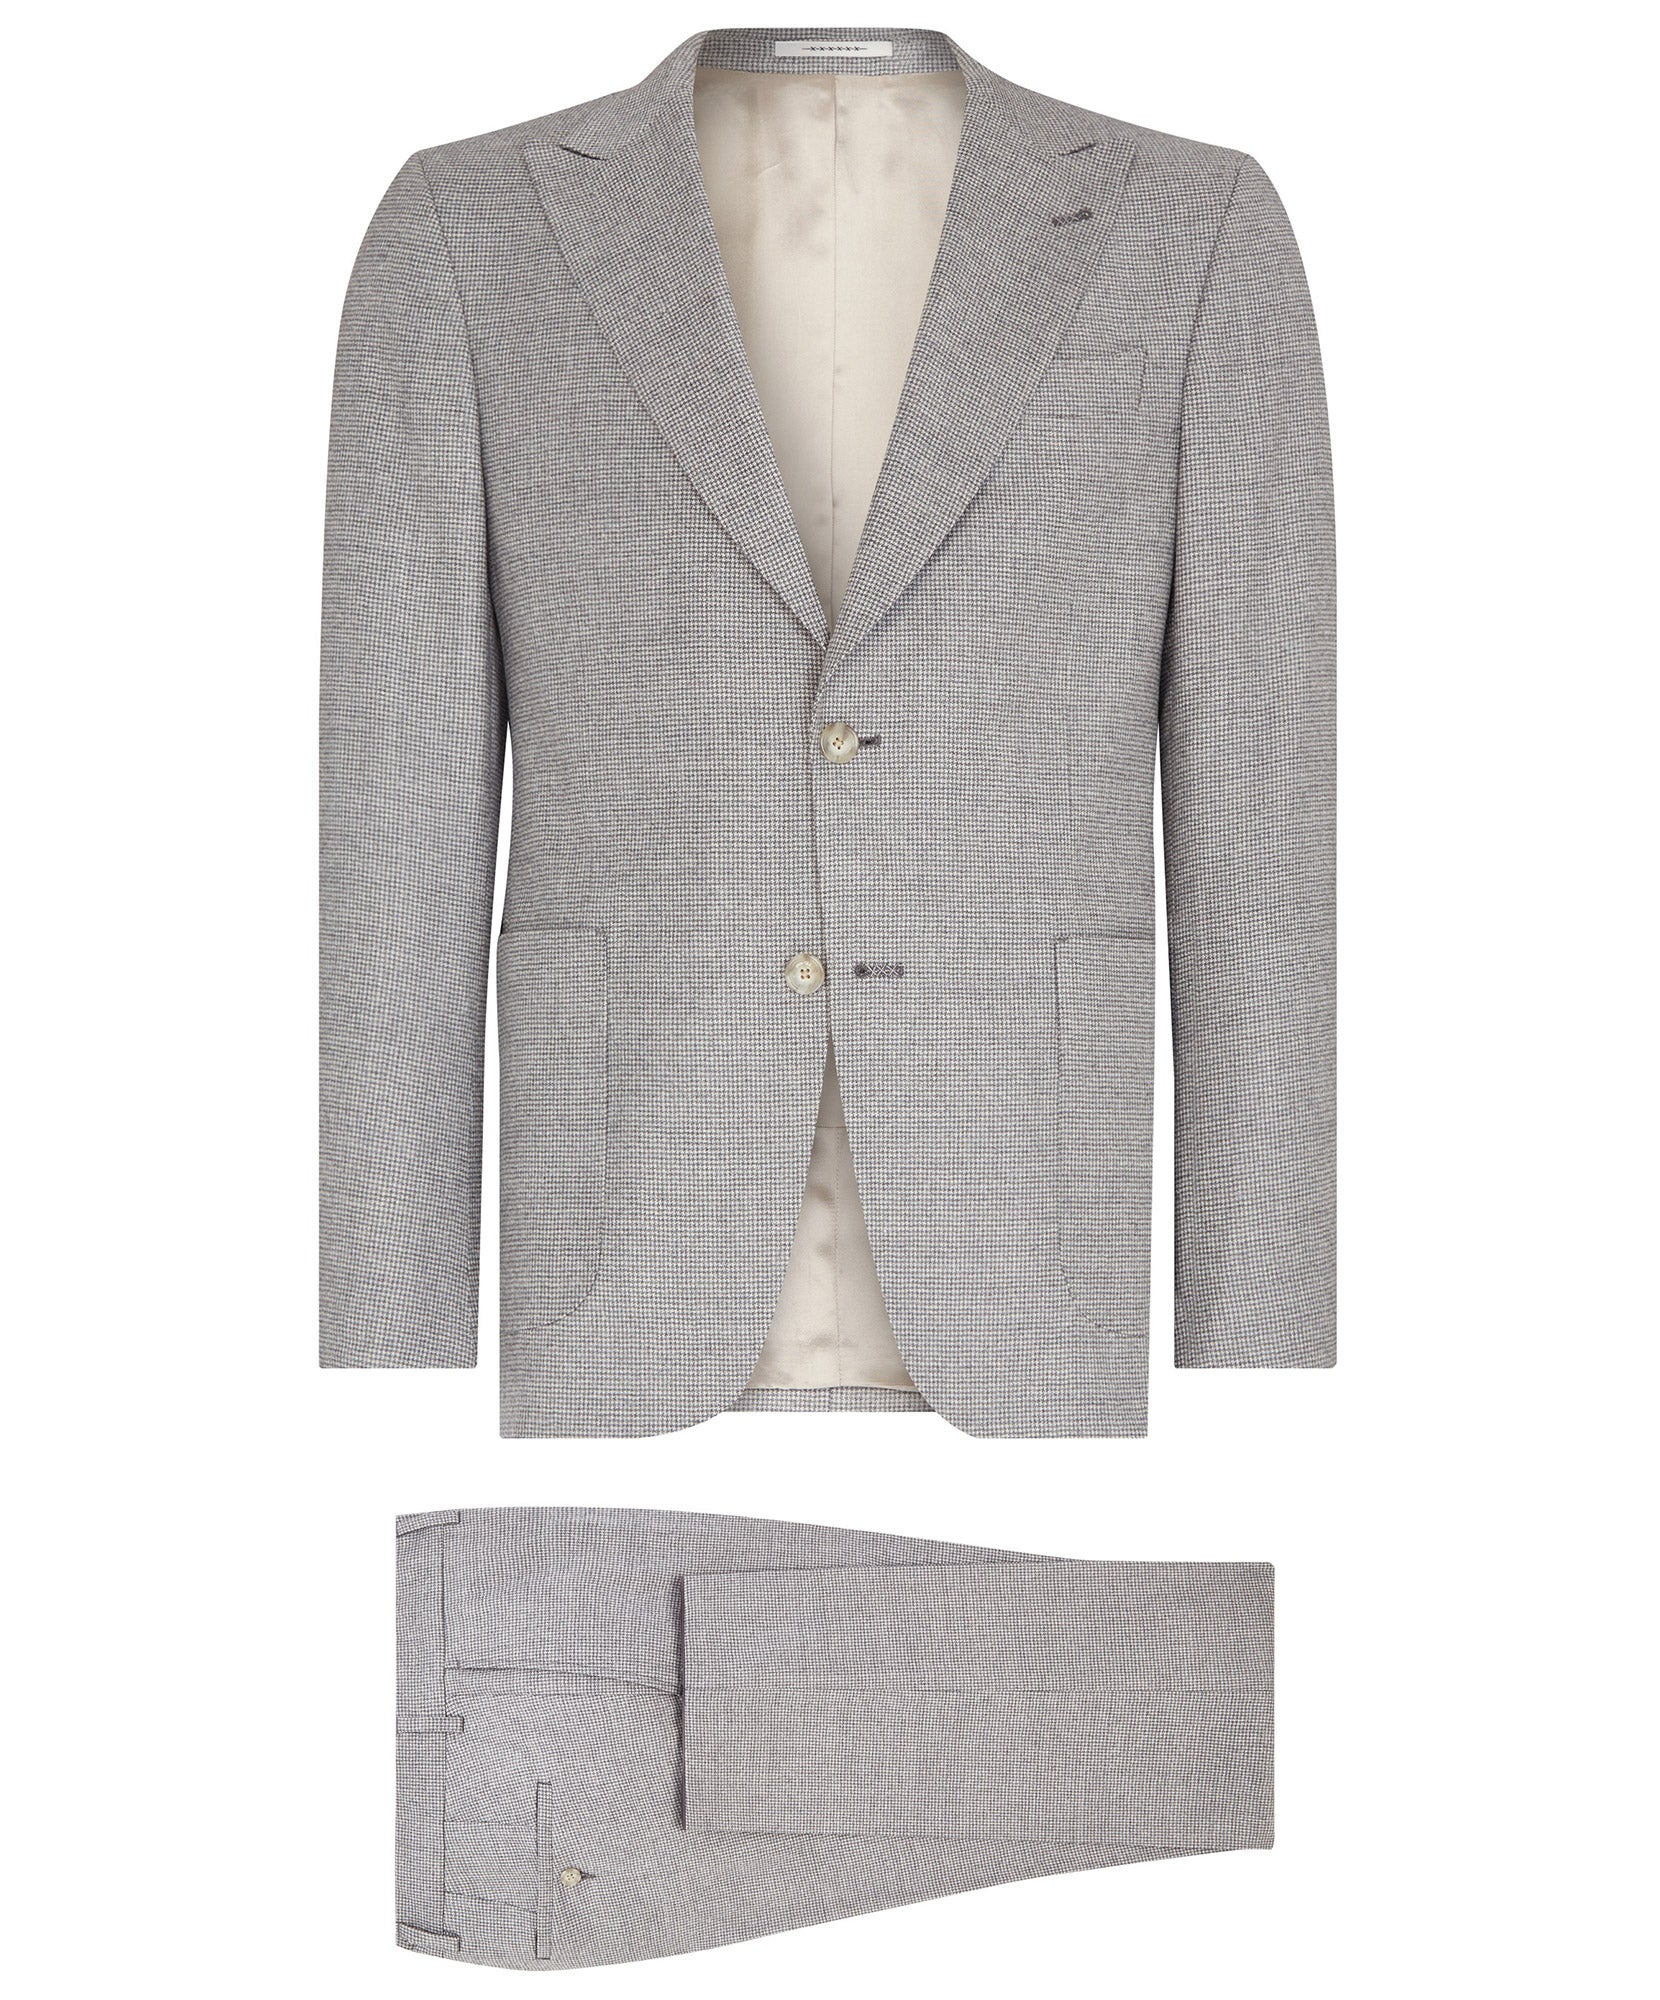 Elvren-Clay Silver Grey Milled Mini Houndstooth Suit